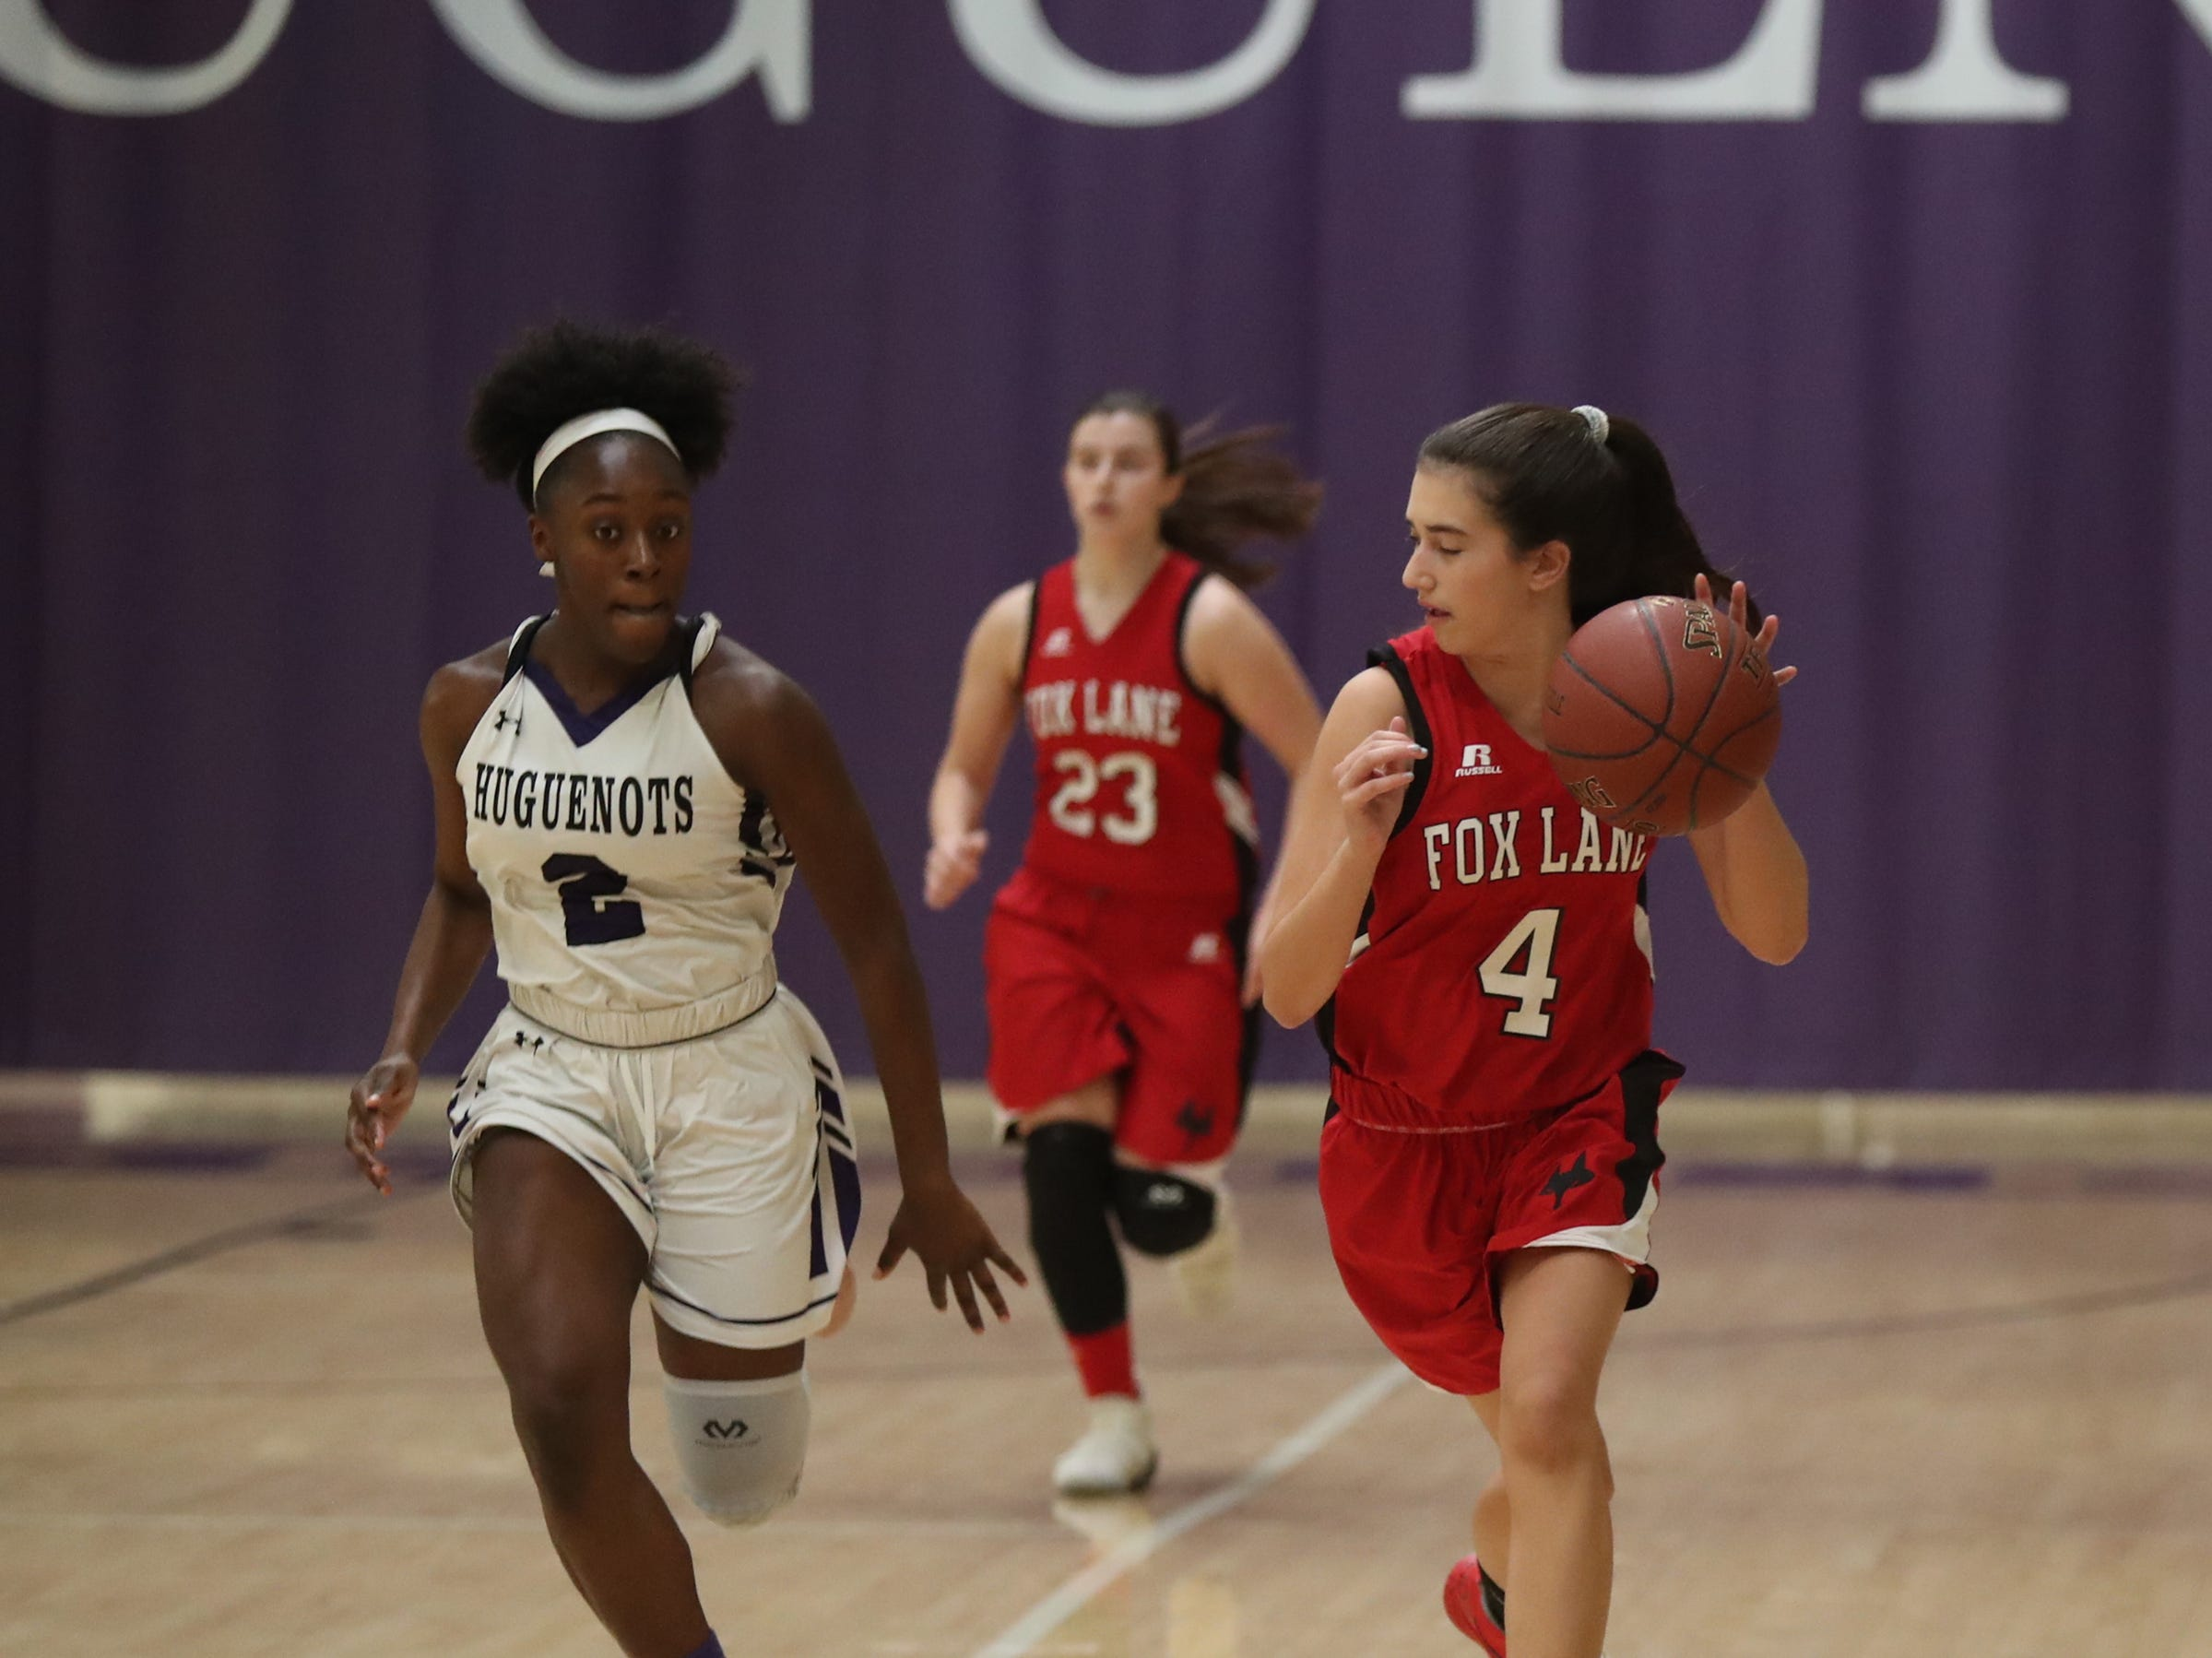 New Rochelle's Nia Bailey (2) chases down Fox Lane's Holly Ades (4) in the first half of the class AA girls basketball outbracket game at New Rochelle High School in New Rochelle on Saturday, February 16, 2019.